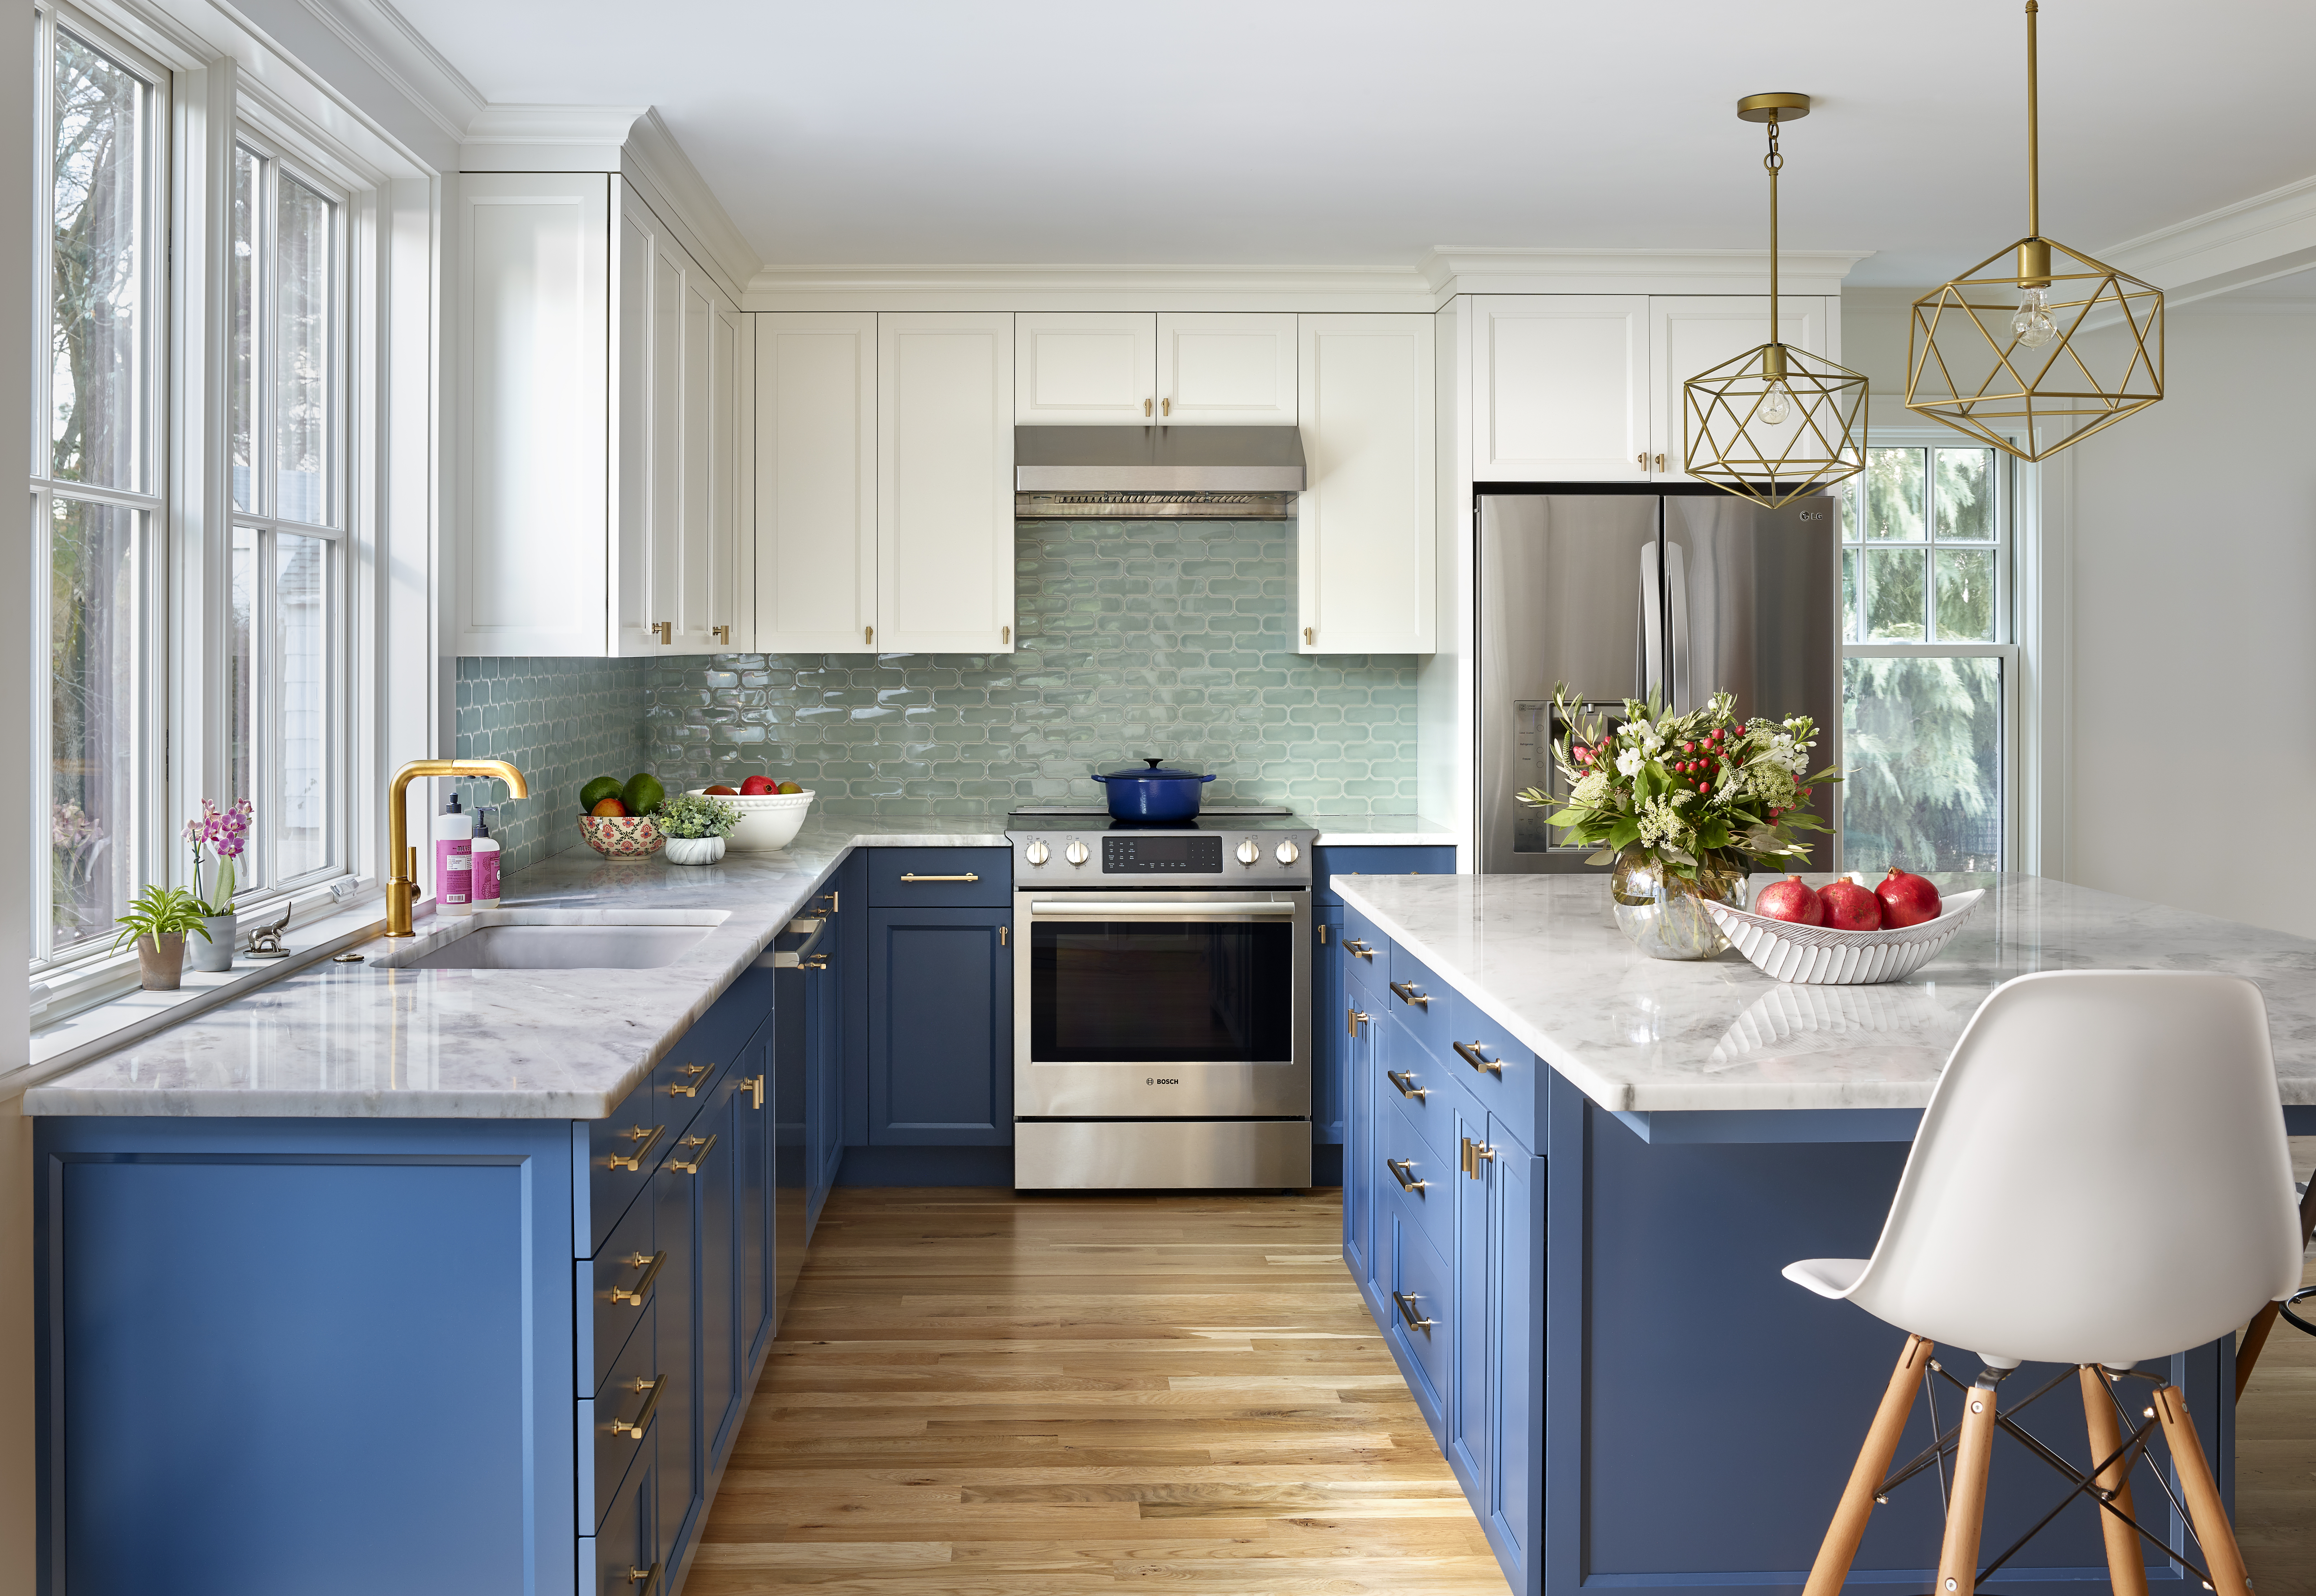 Home Design Ideas How To Make Color Work In An Open Kitchen The Boston Globe